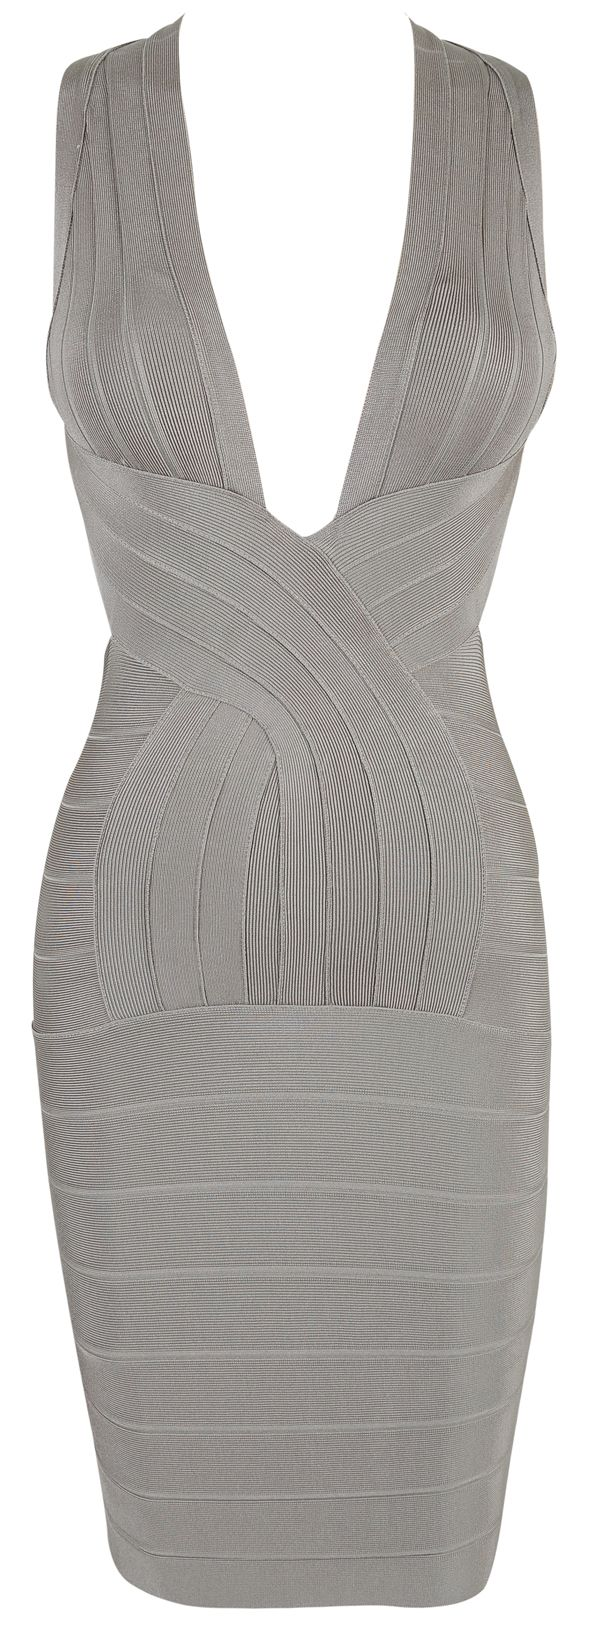 'Vanessa' Grey Deep V Backless Bandage Dress